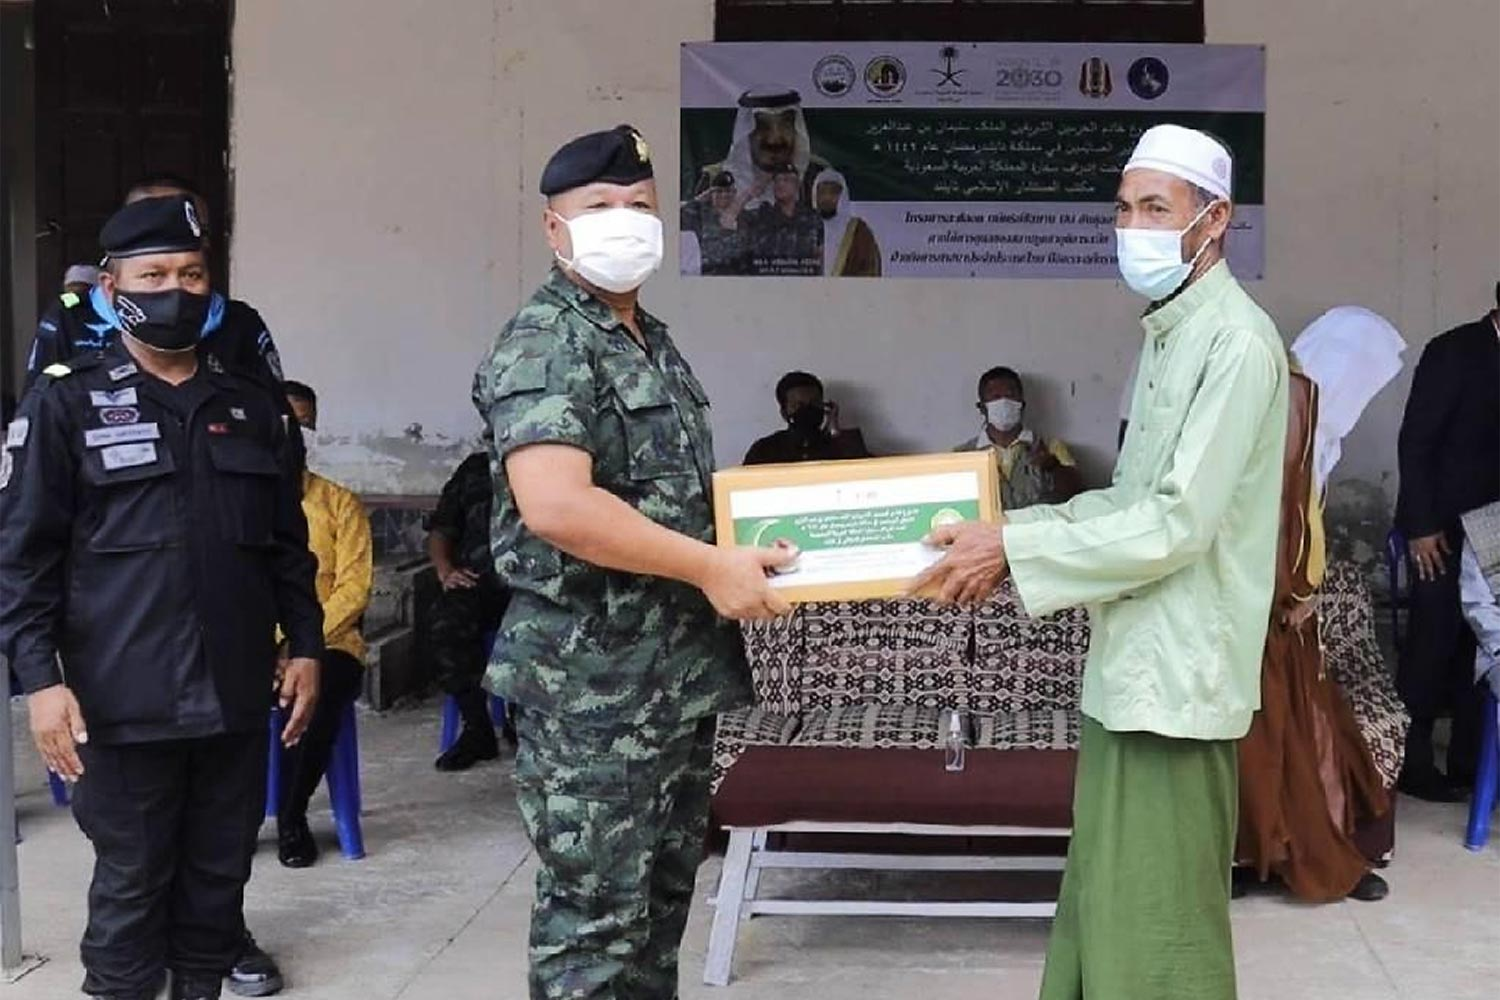 Fourth Army commander Lt Gen Kriangkrai Sirak hands over a gift box from King Salman bin Abdulaziz Al Saud of Saudi Arabia to a Pattani resident. Food boxes were given away to locals to help them break their fast at dusk during Ramadan. (Photo by Fourth Army)